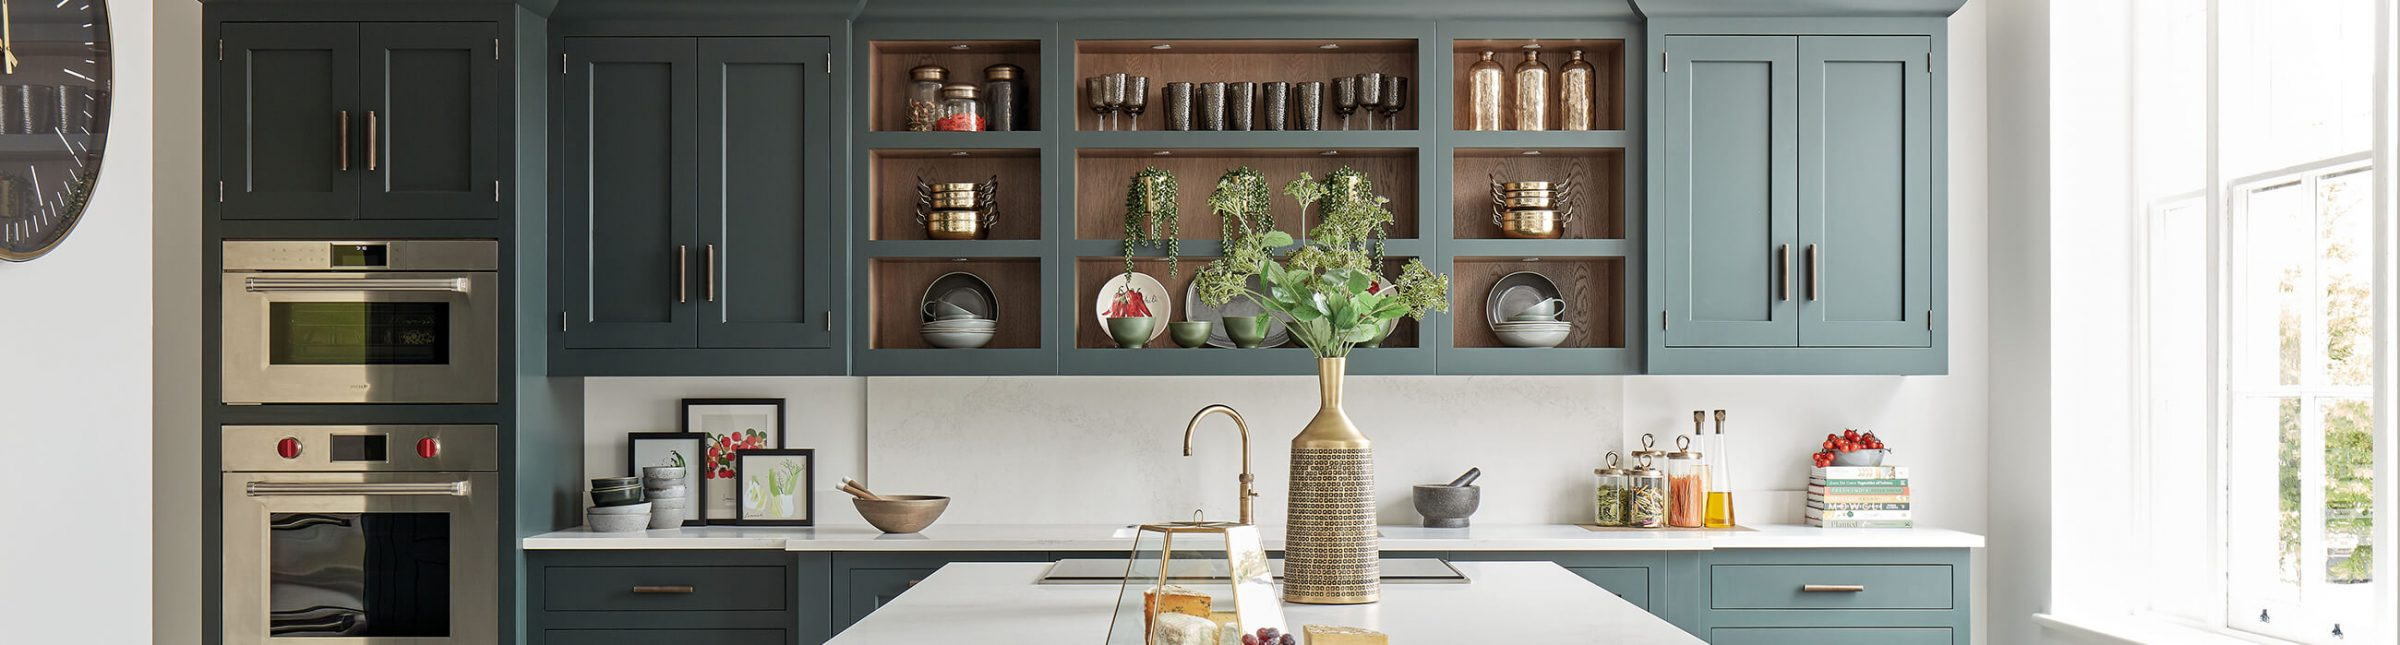 Get Organised with Our Clever Kitchen Storage Ideas